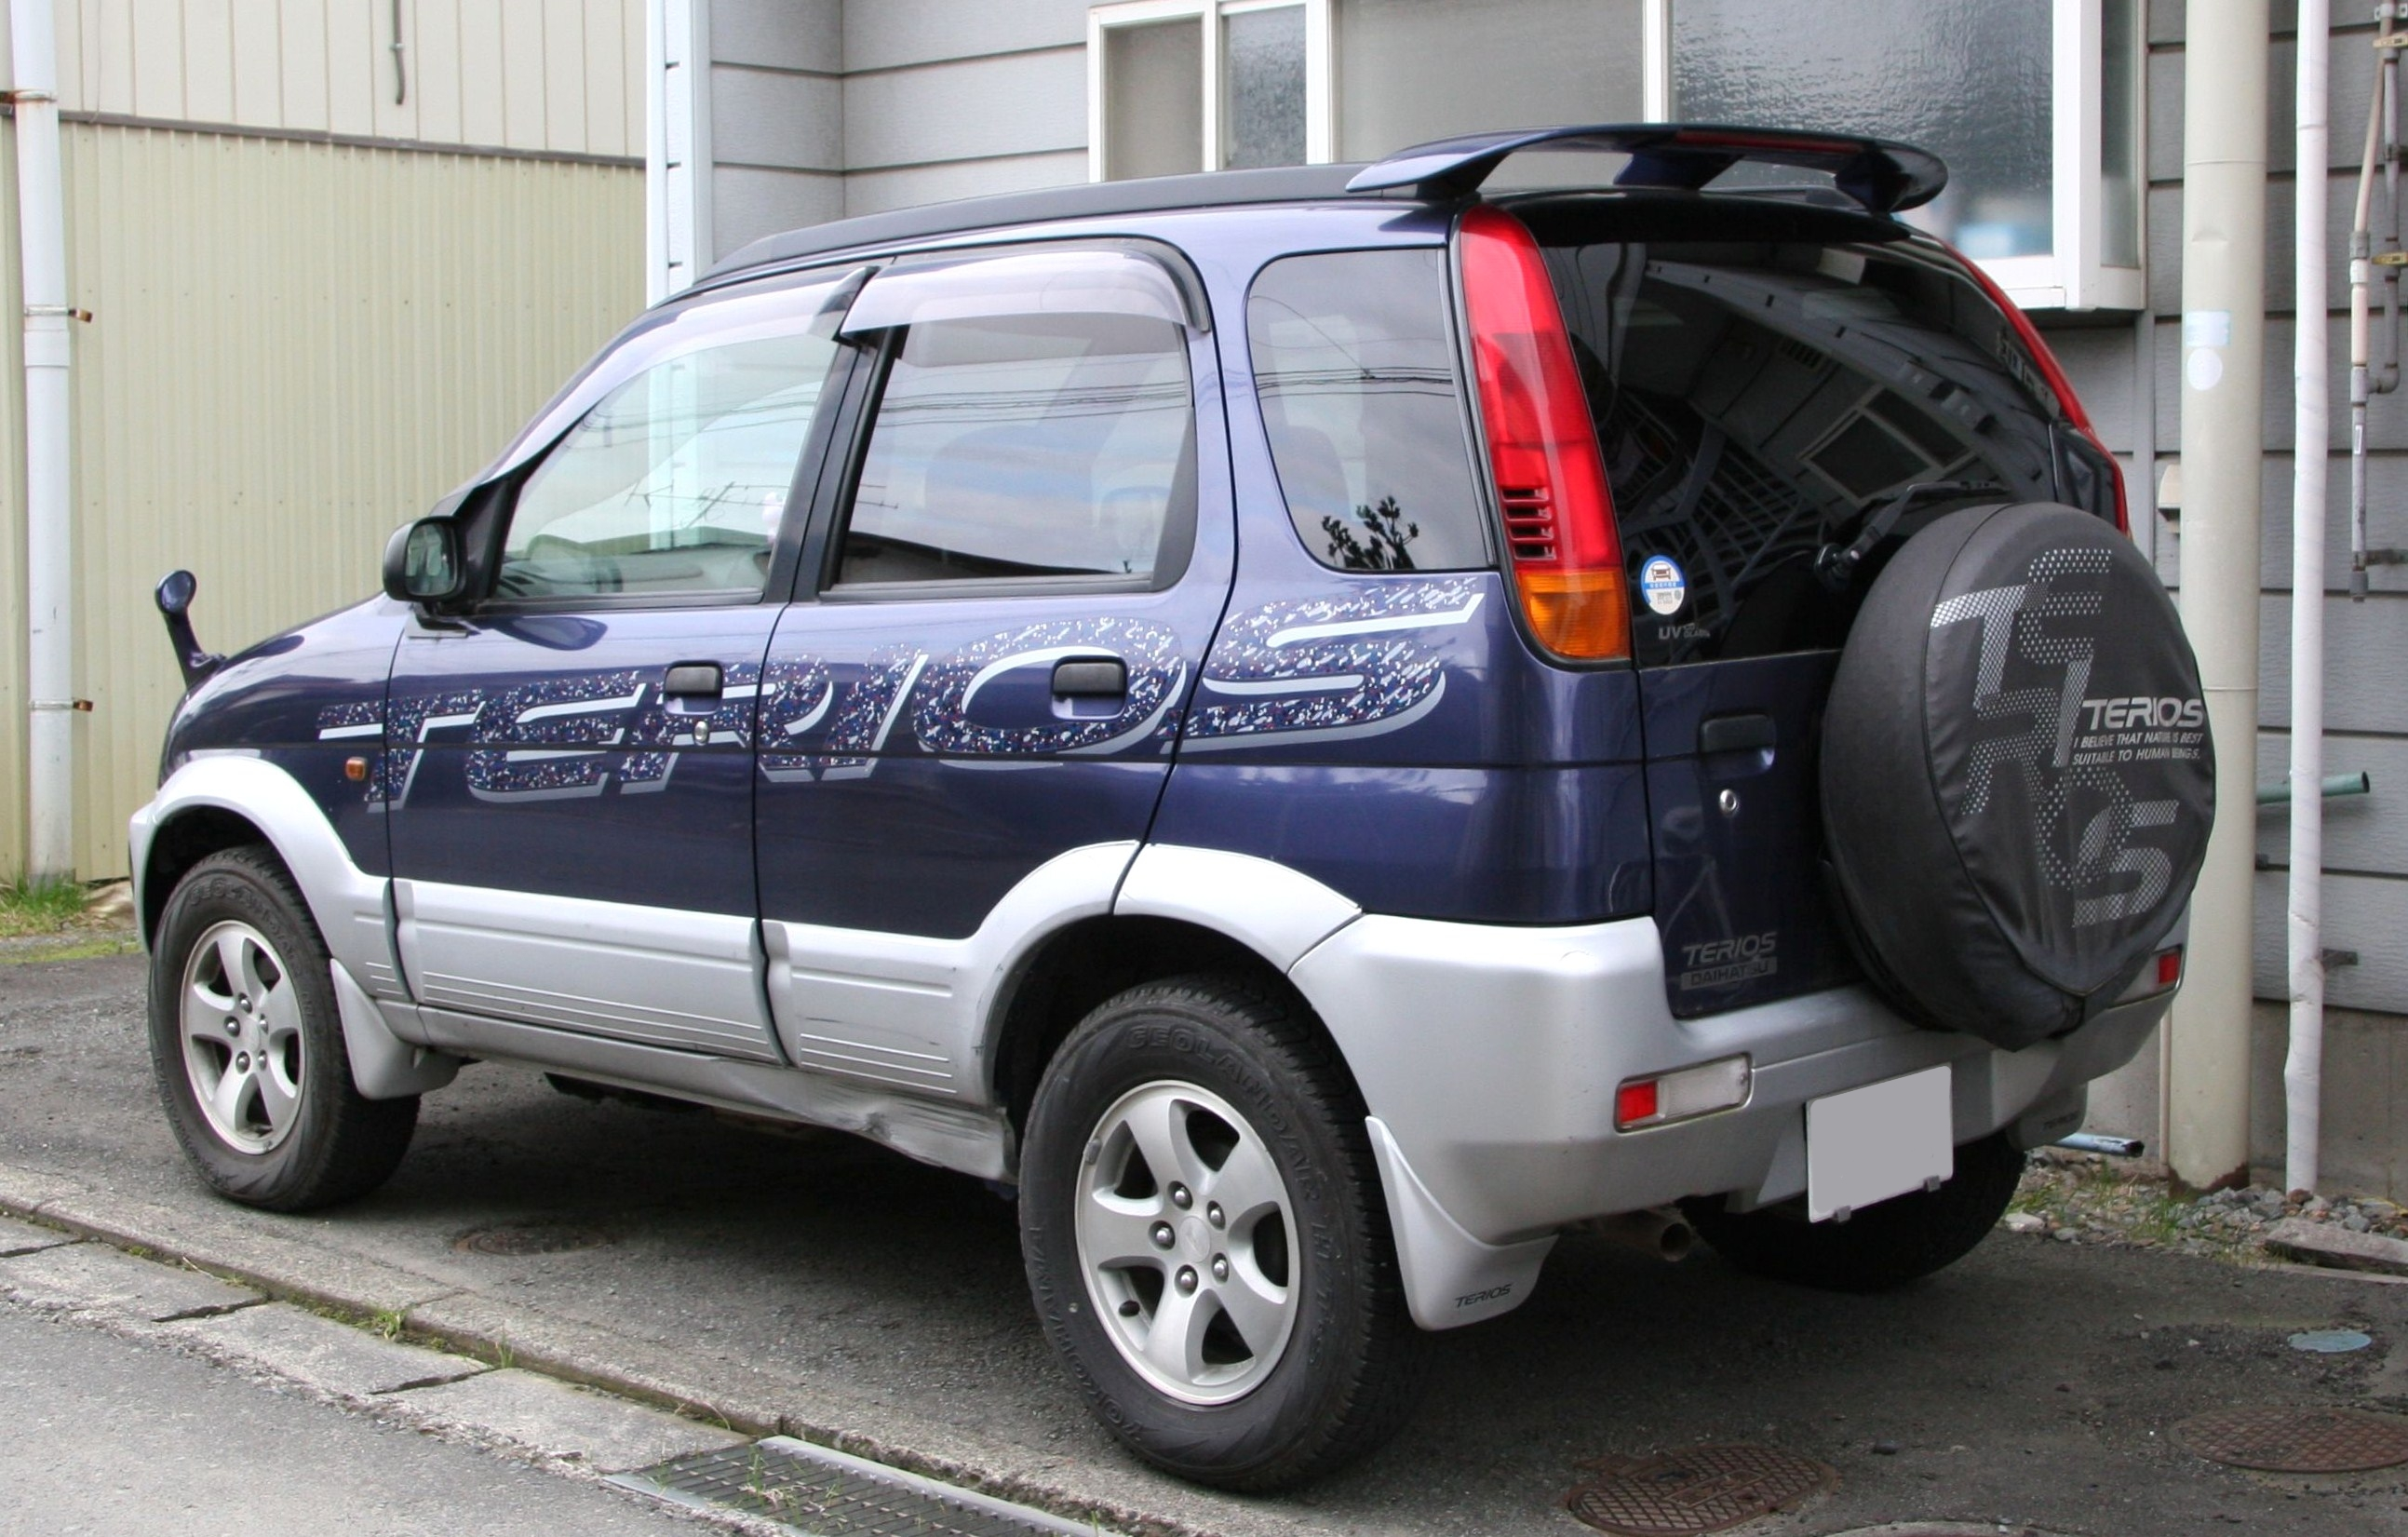 File:Daihatsu Terios rear.jpg - Wikimedia Commons